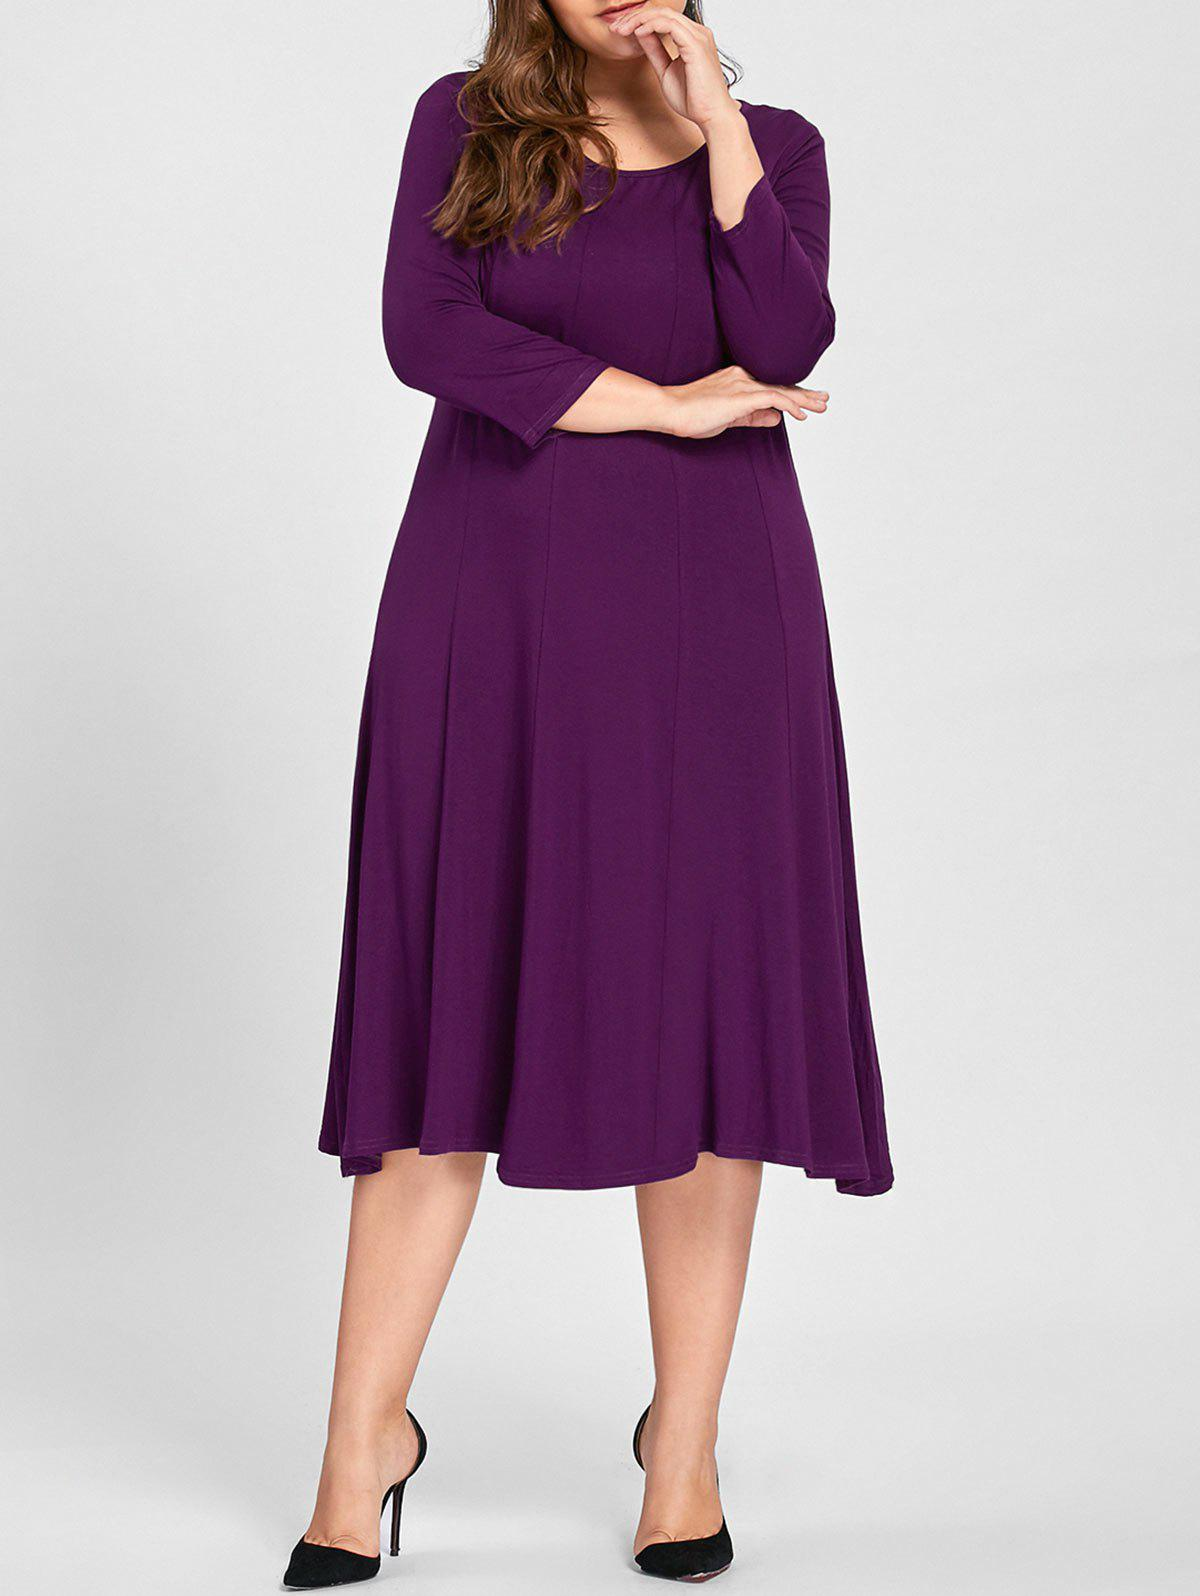 Plus Size A Line Midi T Shirt DressWOMEN<br><br>Size: 3XL; Color: PURPLE; Style: Casual; Material: Cotton,Polyester; Silhouette: A-Line; Dresses Length: Mid-Calf; Neckline: Round Collar; Sleeve Length: 3/4 Length Sleeves; Pattern Type: Solid; With Belt: No; Season: Fall; Weight: 0.5200kg; Package Contents: 1 x Dress;